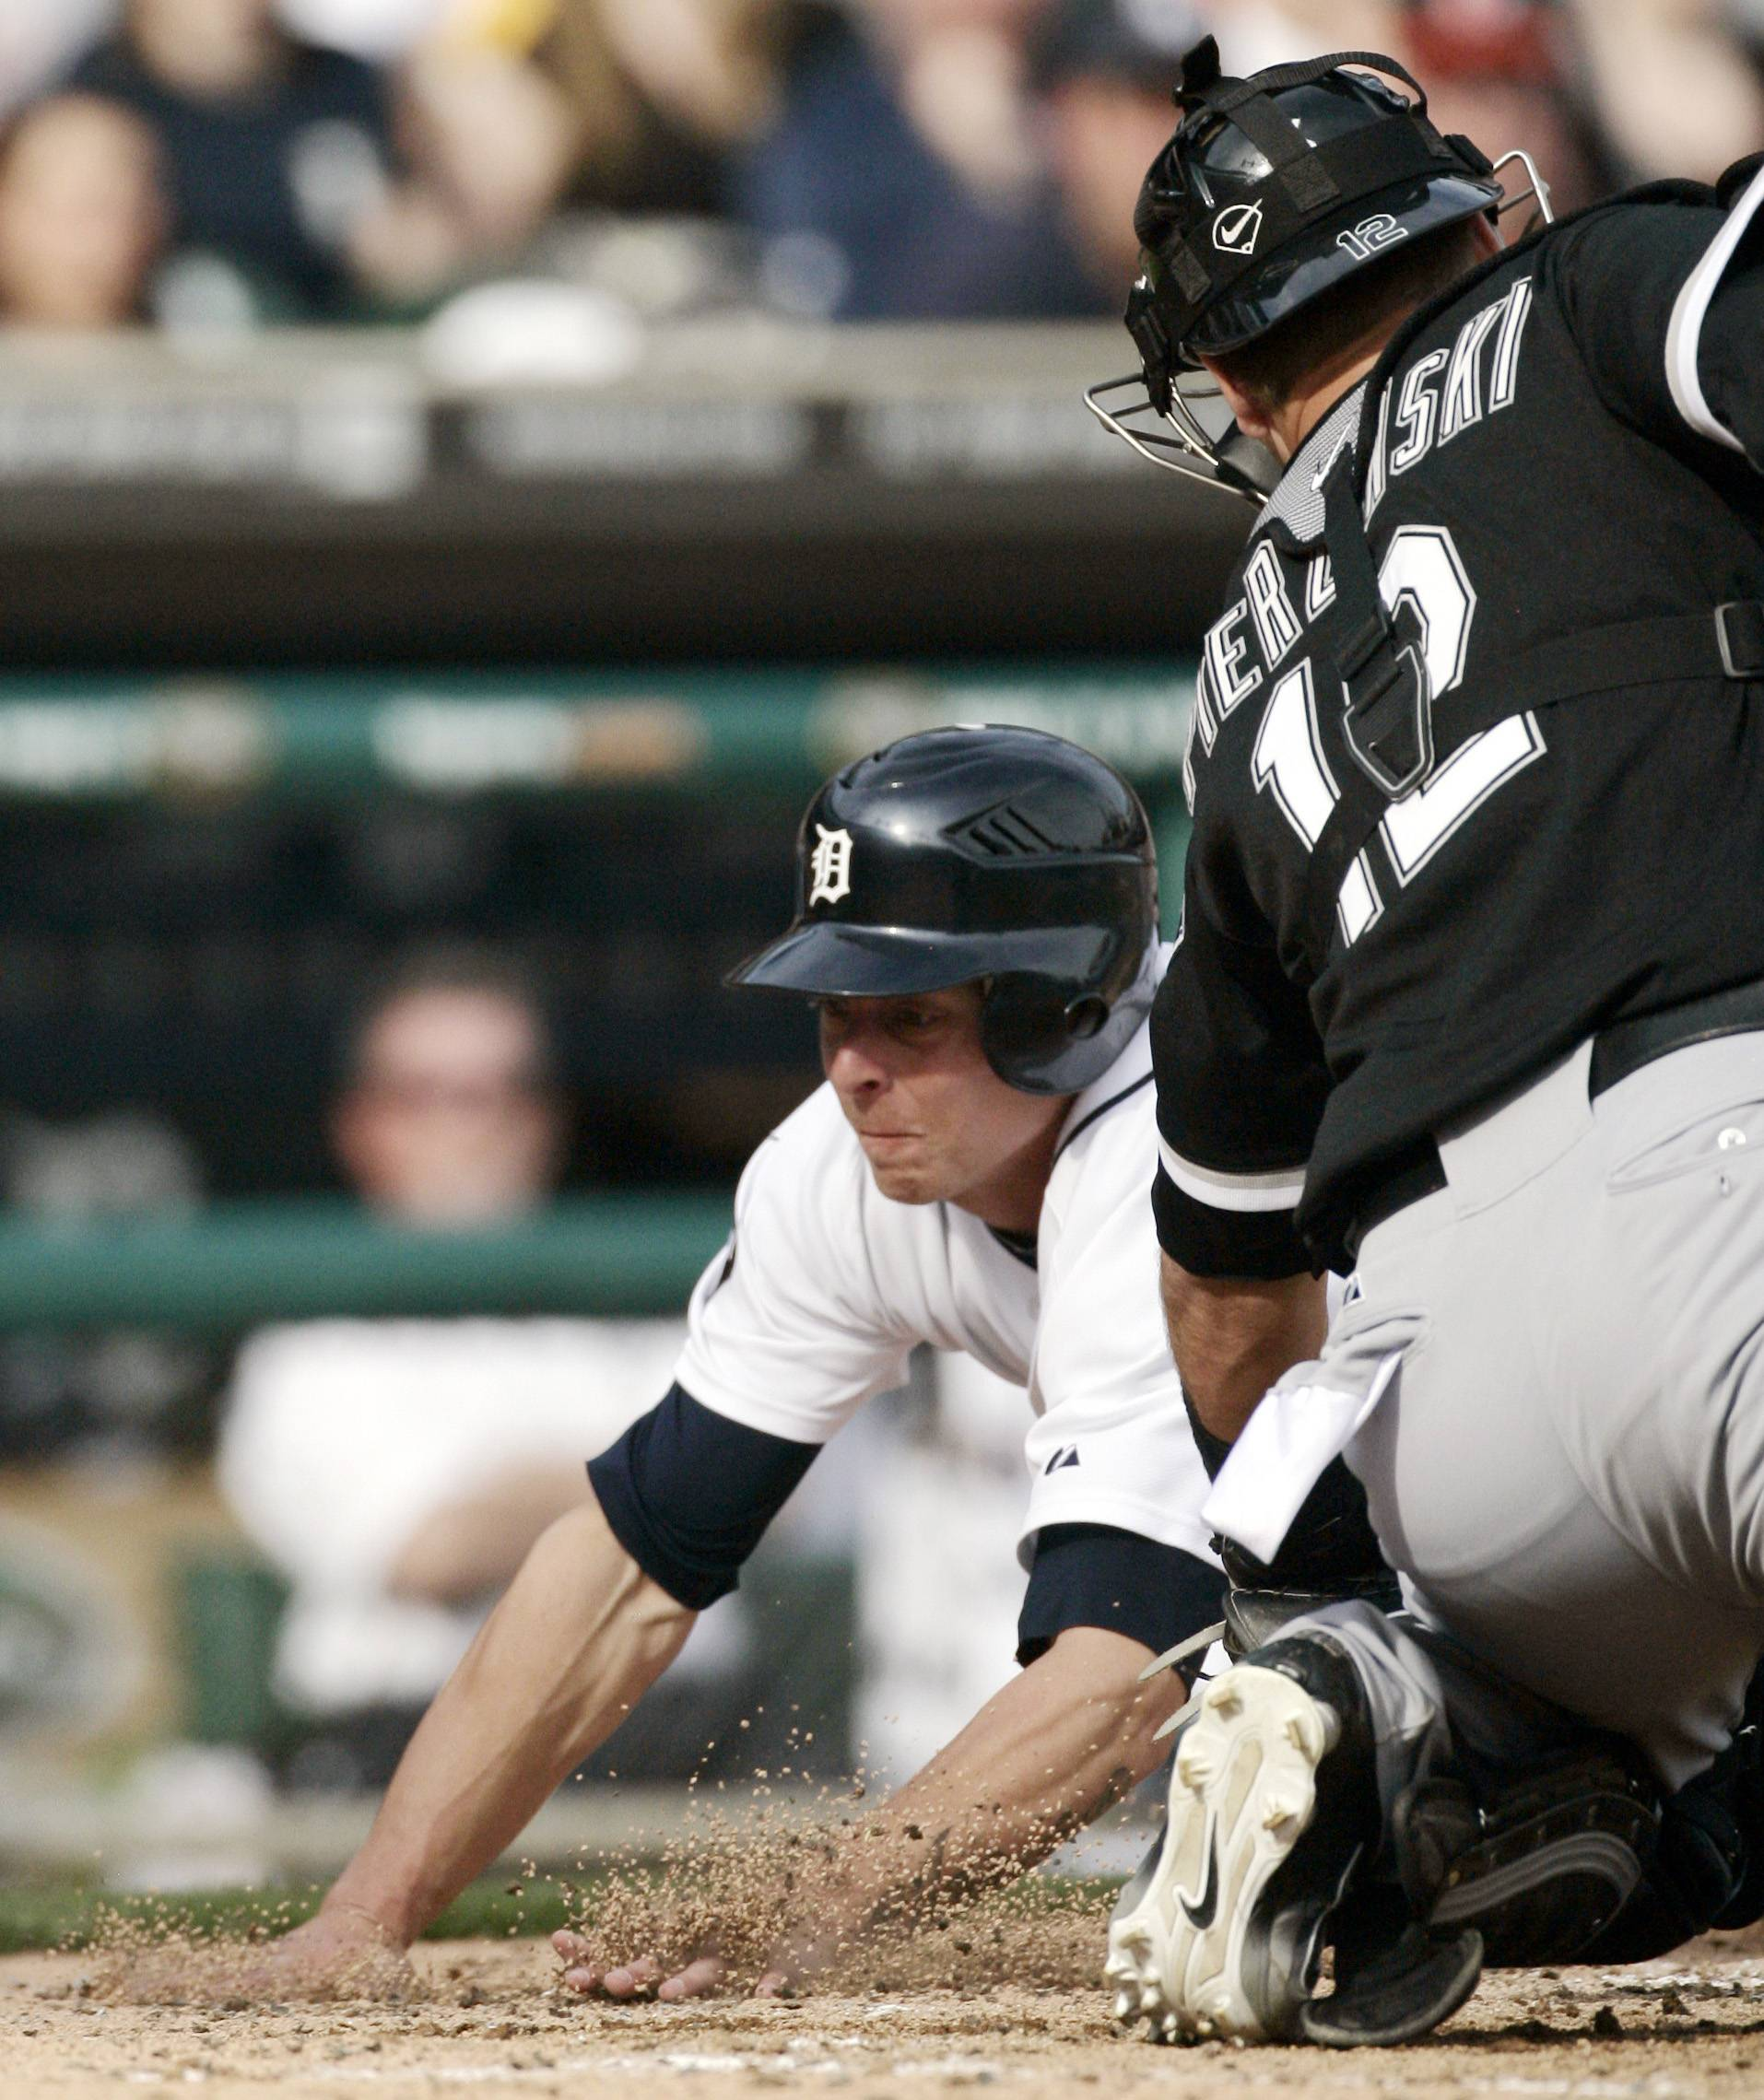 The Detroit Tigers' Brandon Inge dives past A.J. Pierzynski to score from third base on a single by Magglio Ordonez in the fifth inning on Saturday.